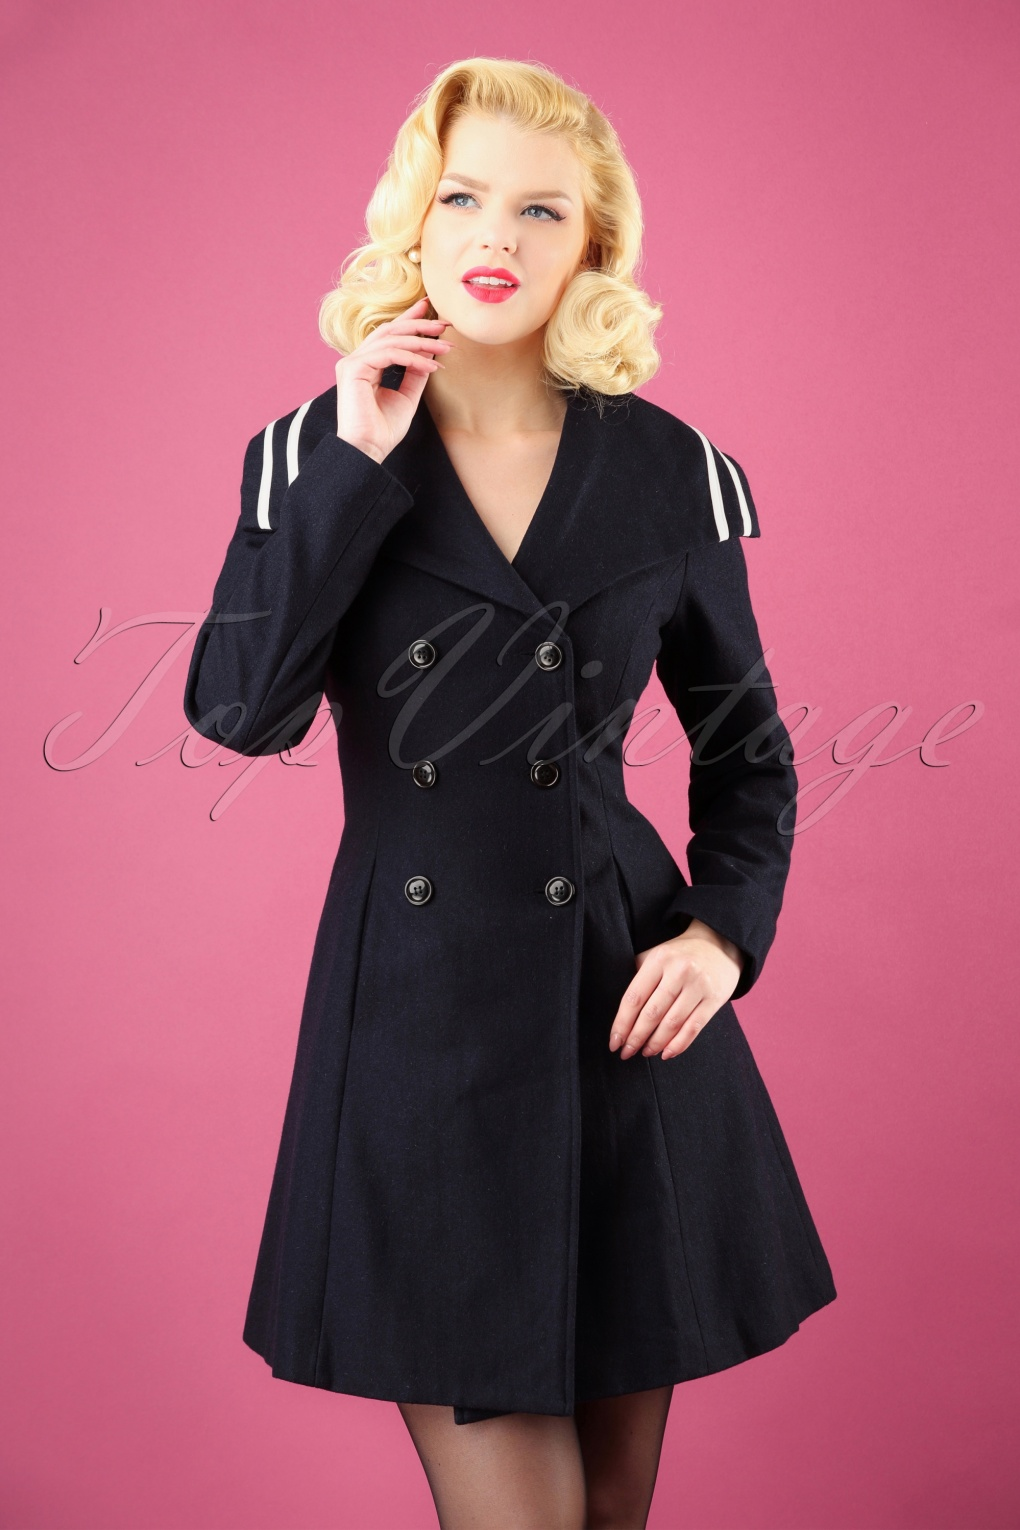 1950s Jackets, Coats, Bolero | Swing, Pin Up, Rockabilly 50s Jennifer Nautical Coat in Navy £60.52 AT vintagedancer.com